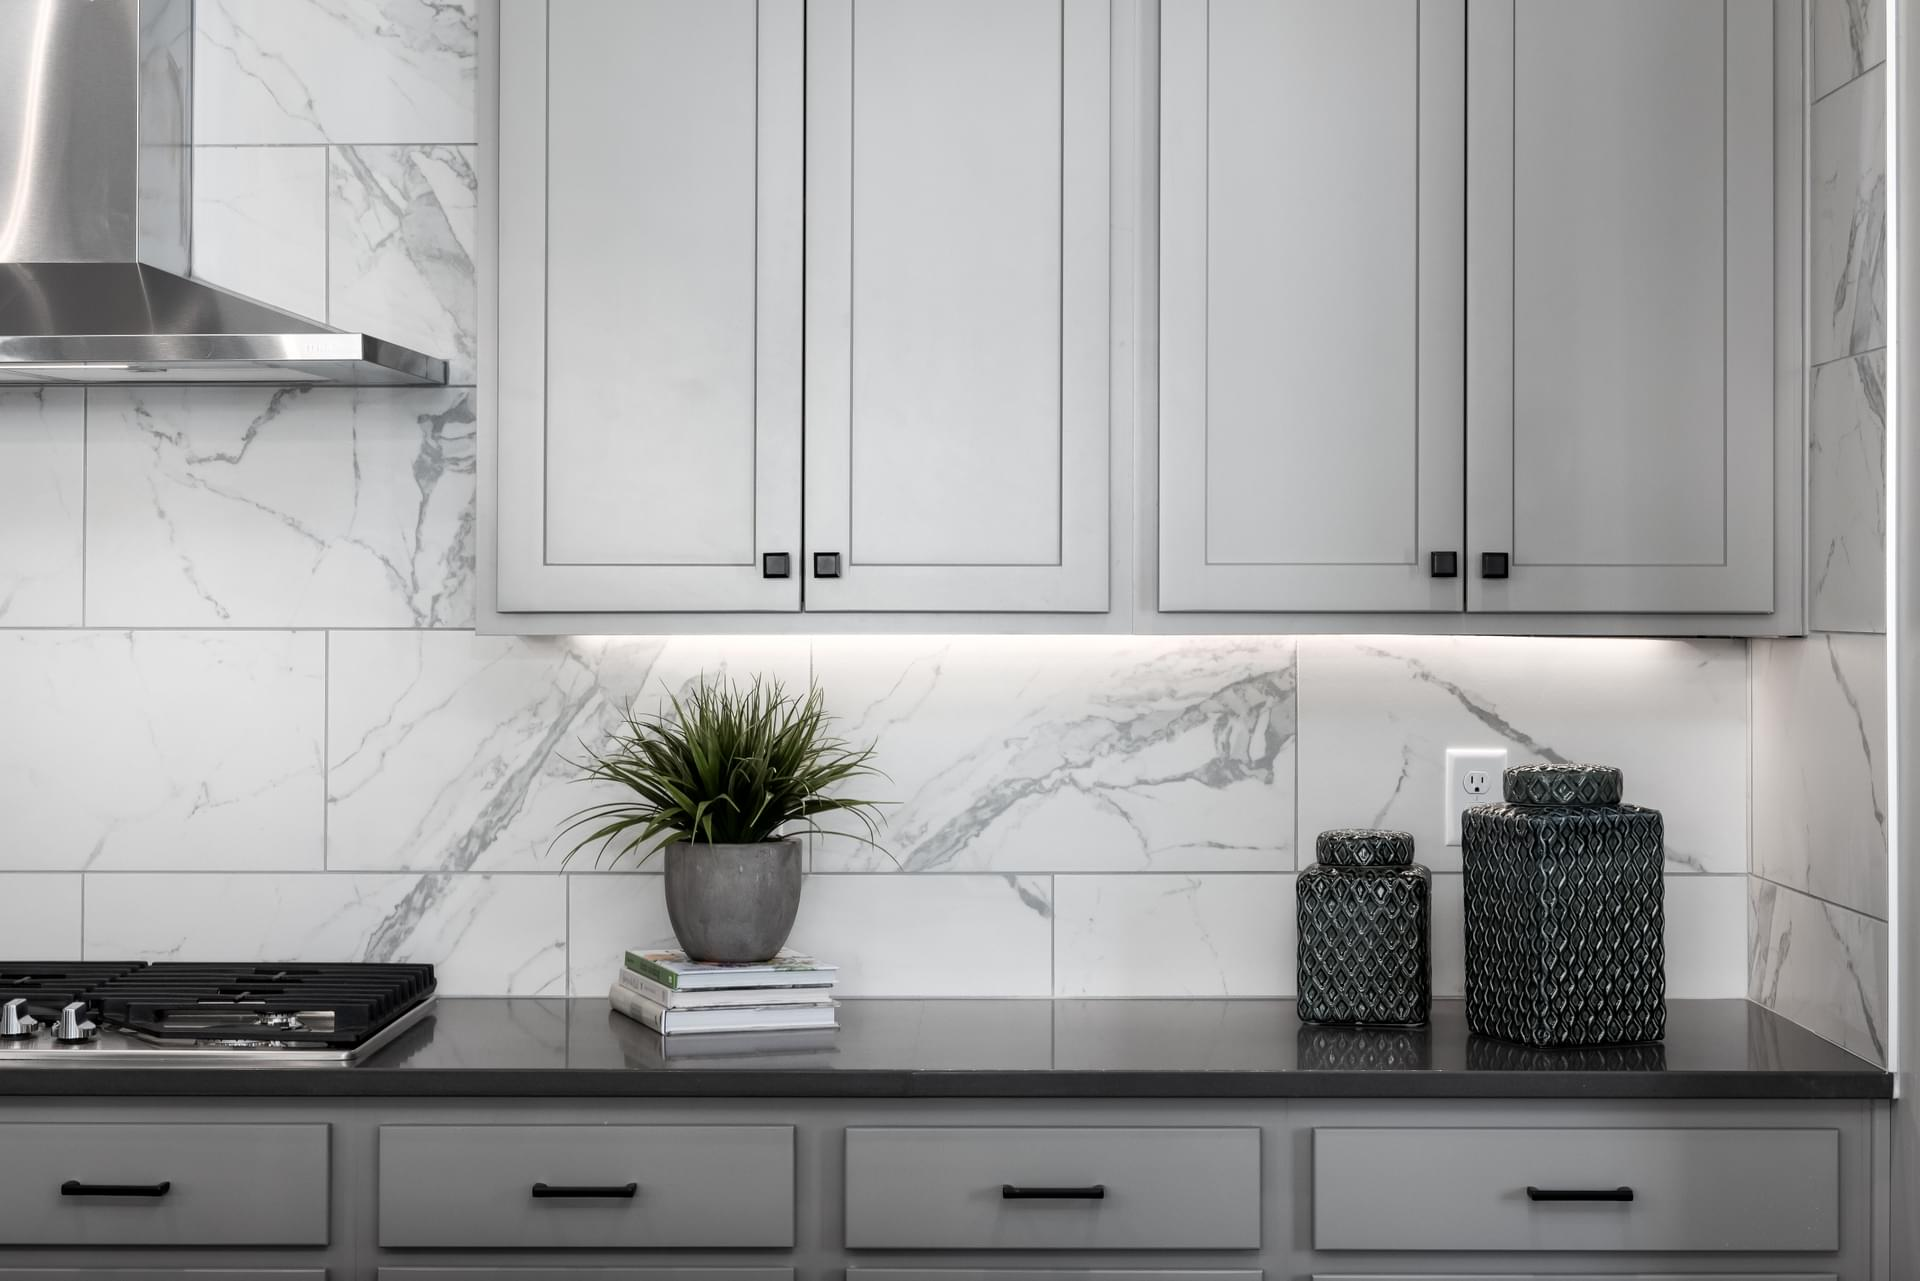 Trending – New Cabinet Additions to Add to Your Home